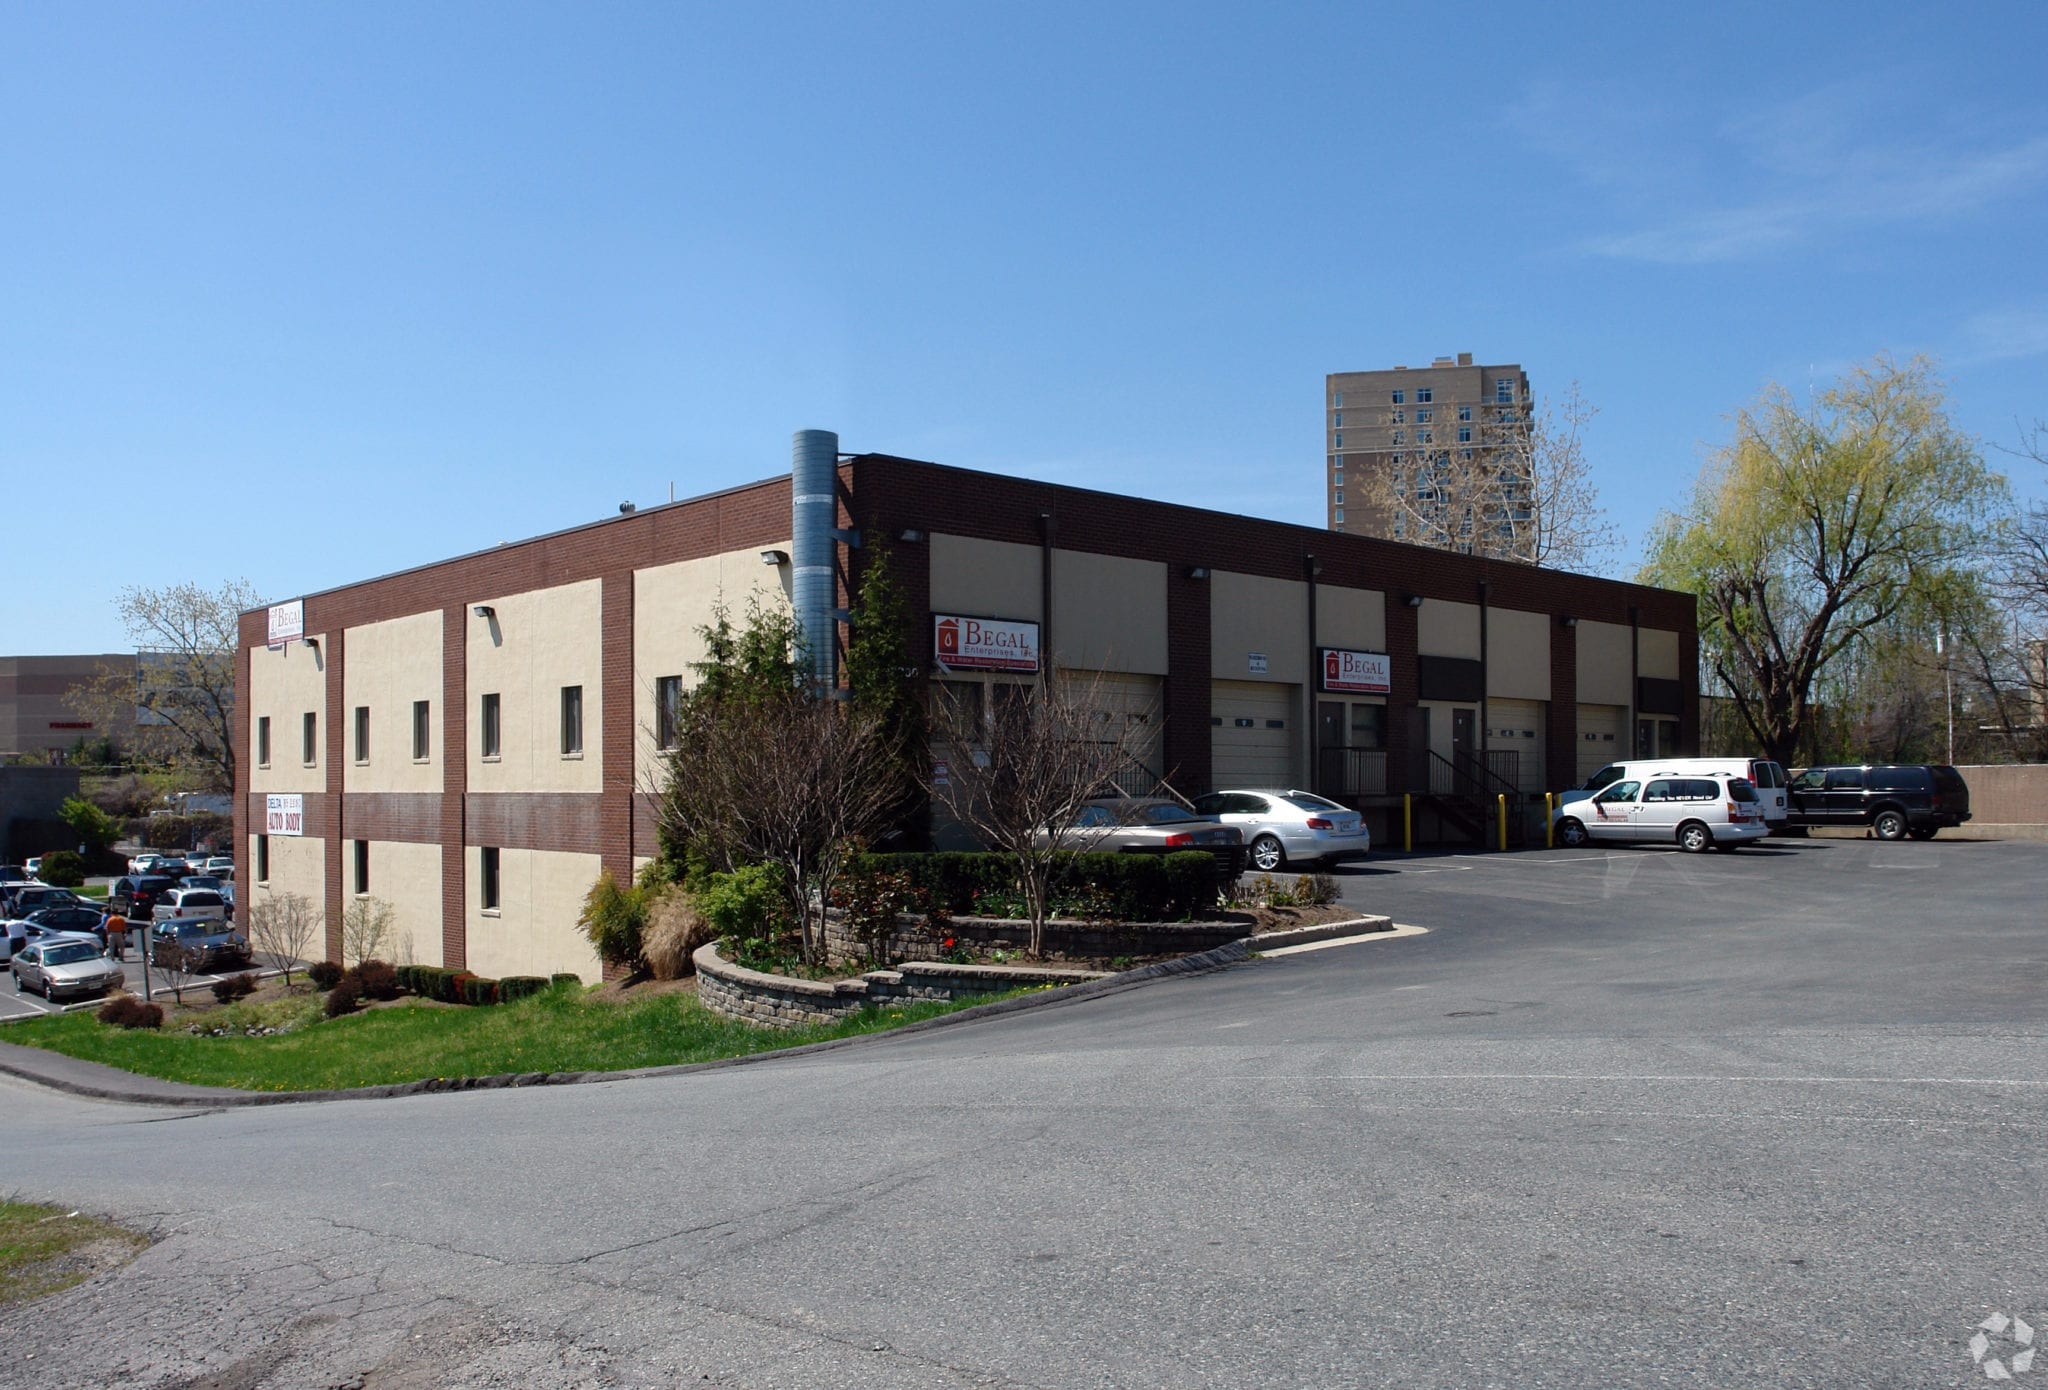 Edge Brokers Sale Of Infill Warehouse Building In Montgomery County, Maryland For $4.4M